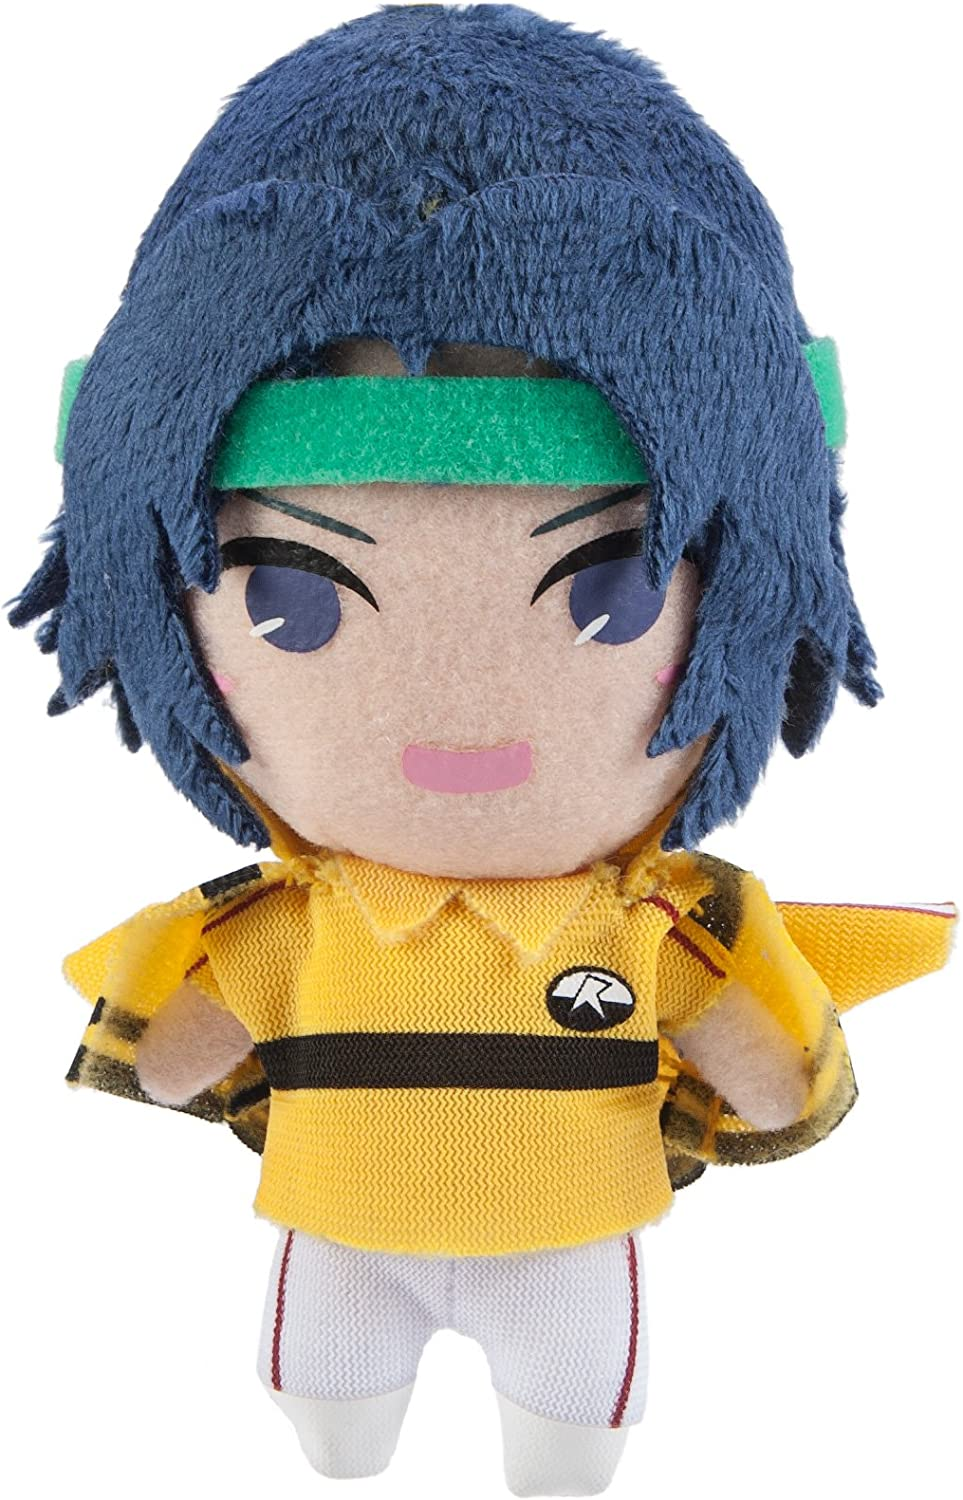 The New Prince of Tennis National Convention Series Seiichi Yukimura Juguete De Peluche